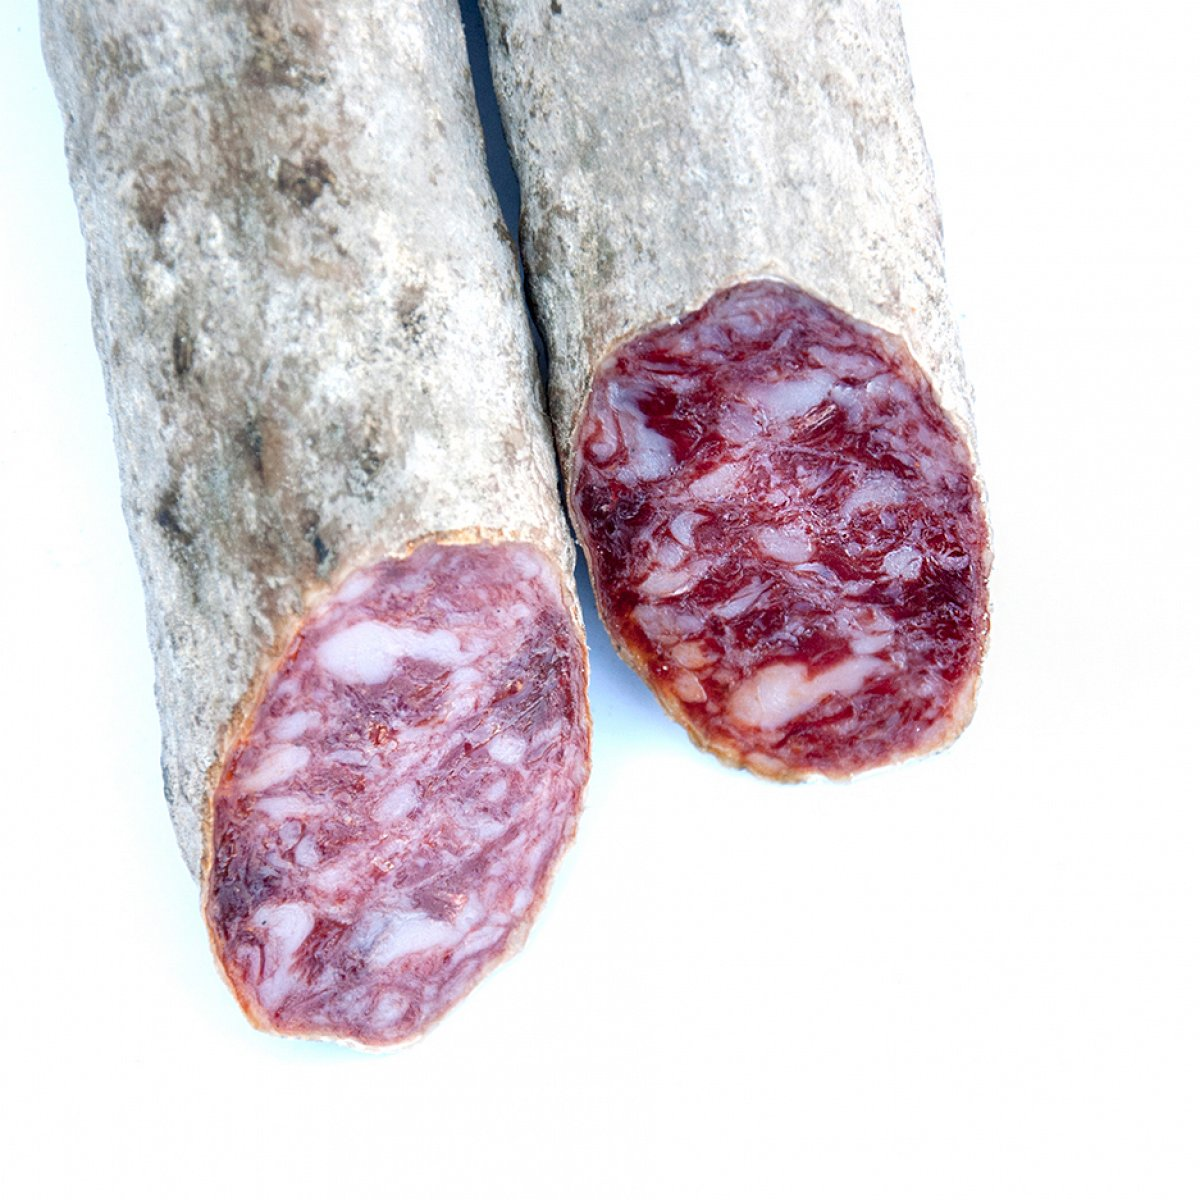 Thick-Casing Salchichon Extra